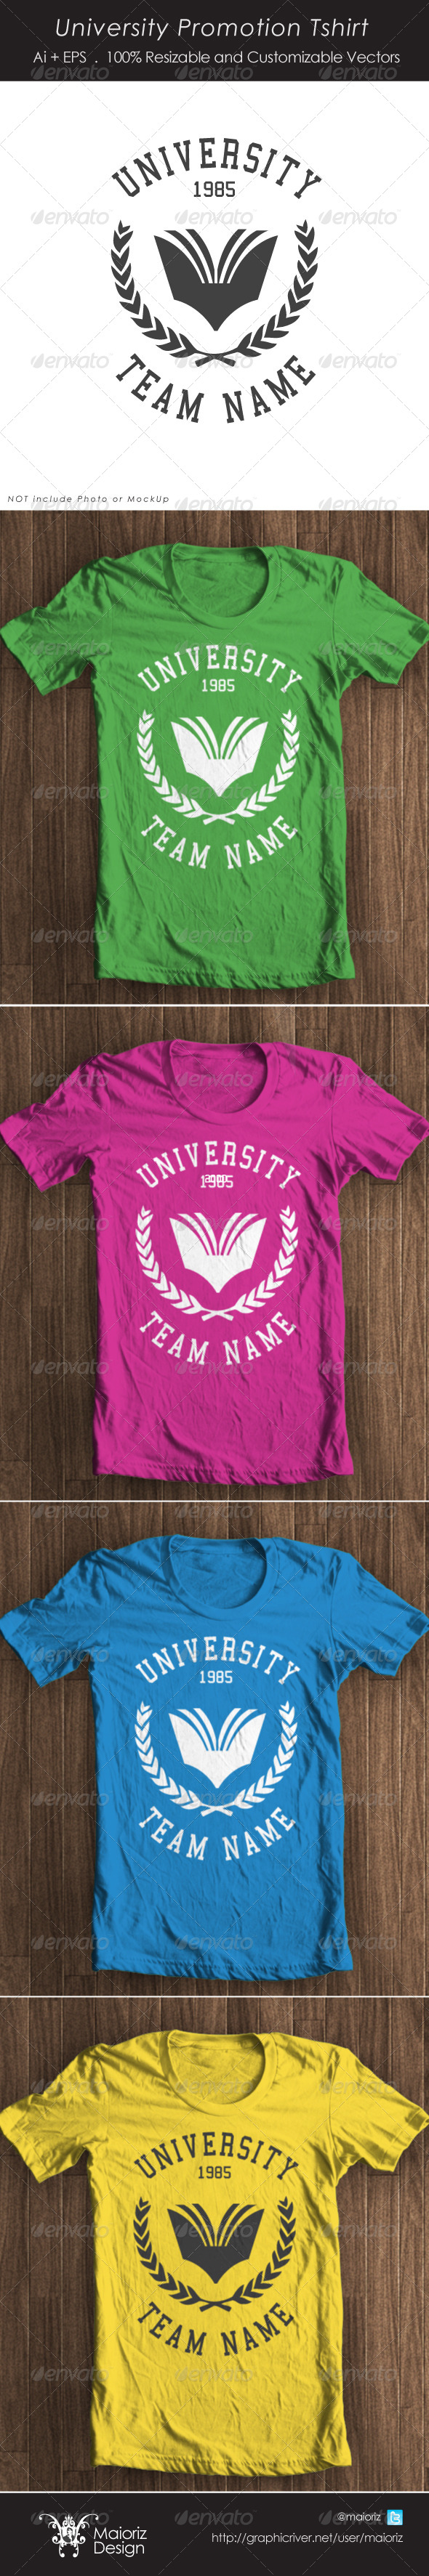 GraphicRiver University Promotion Tshirt 4307018